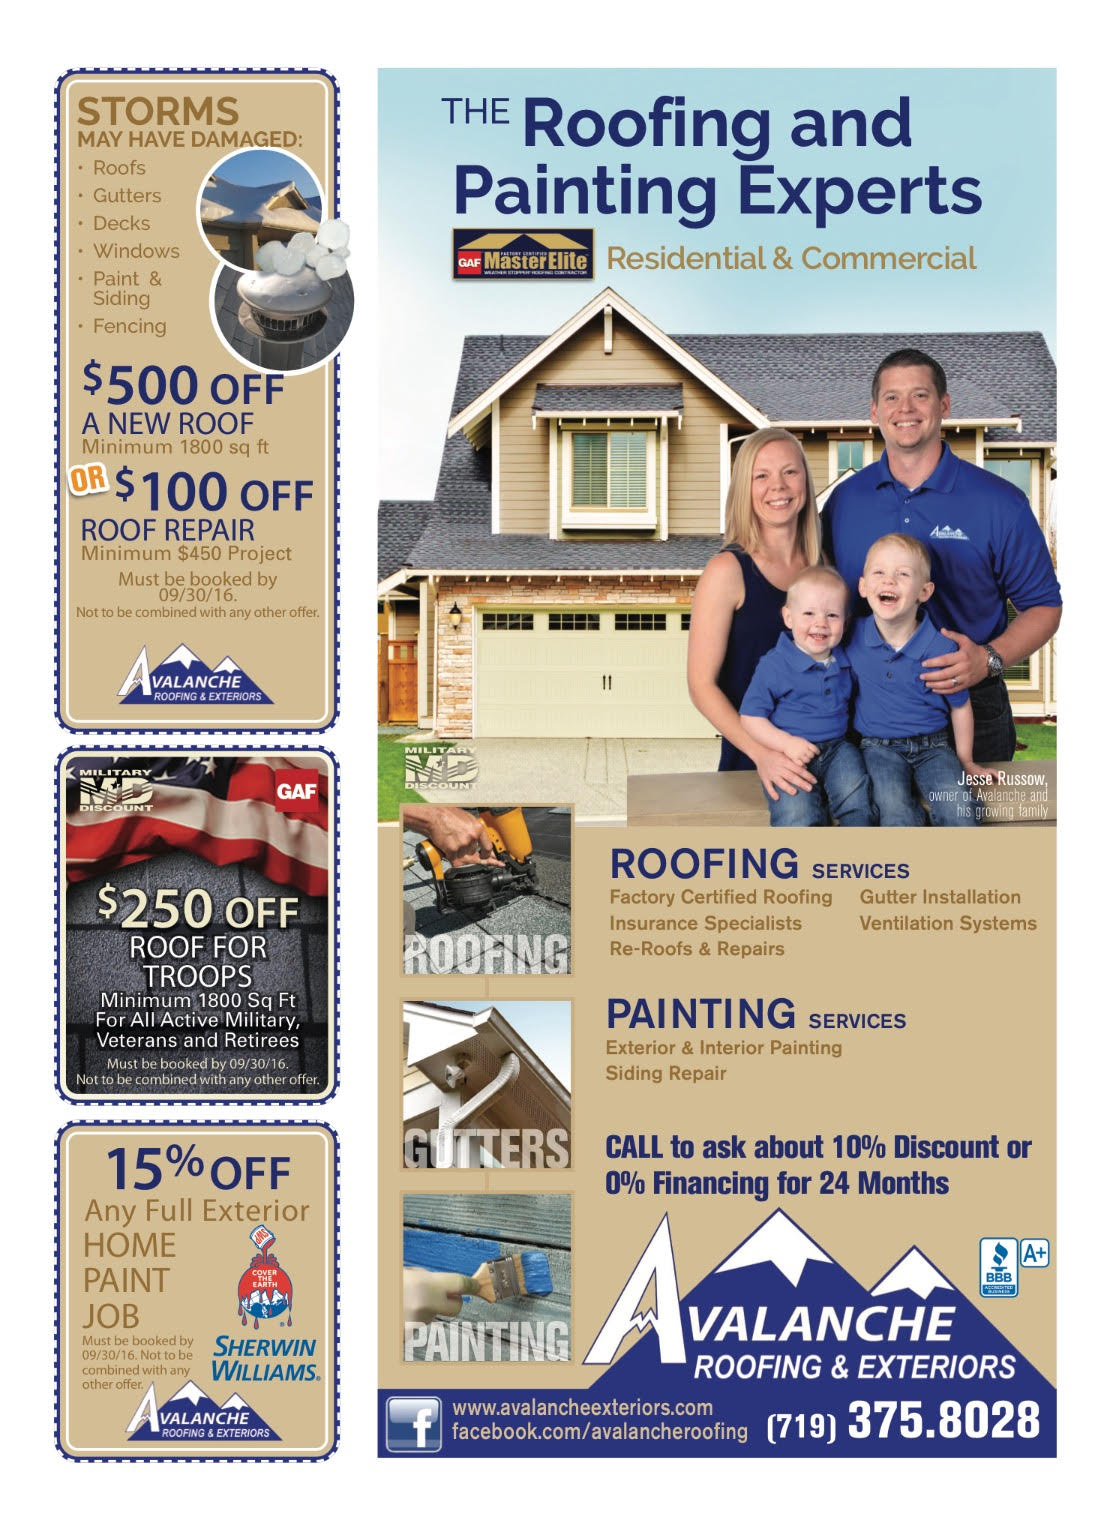 Avalanche Roofing & Exteriors Family Photo